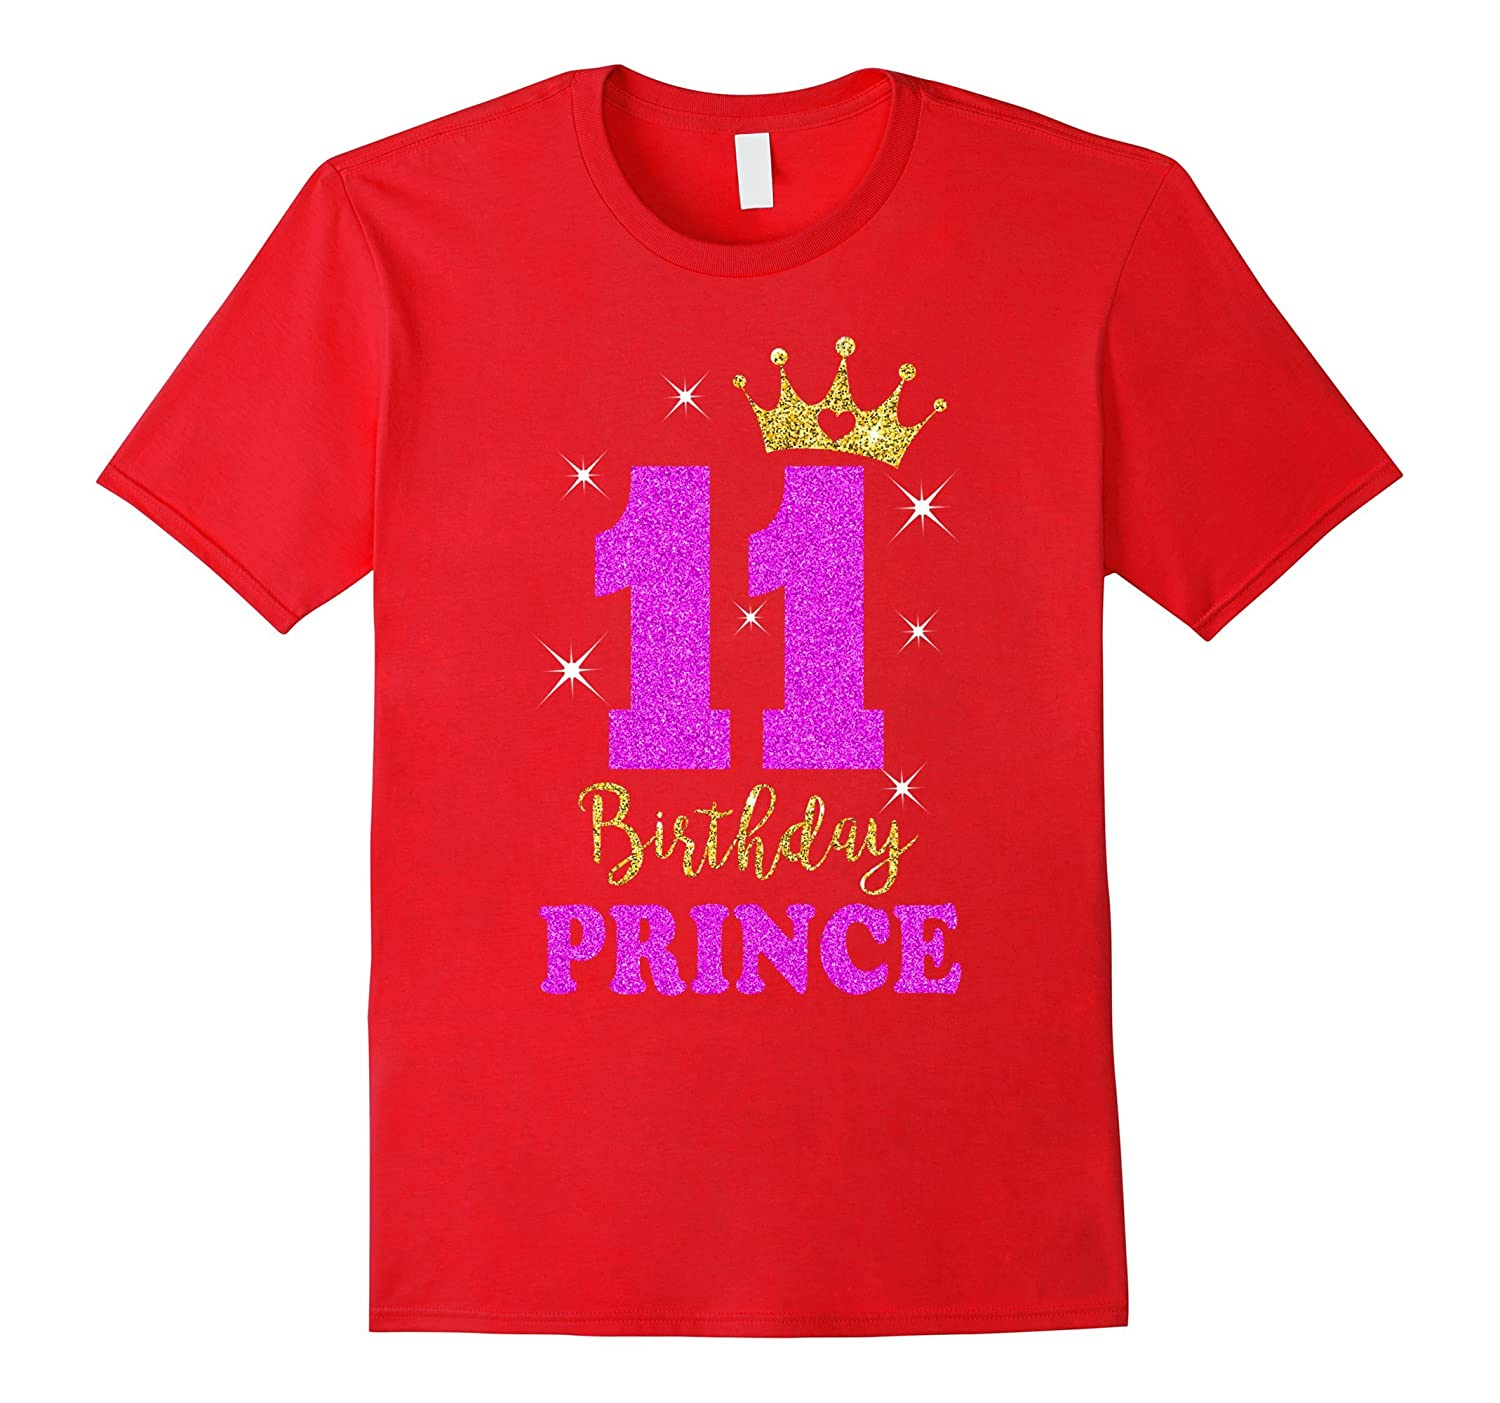 Cute 11th Birthday Prince Gifts For Son 11 Years Old T Shirt ANZ